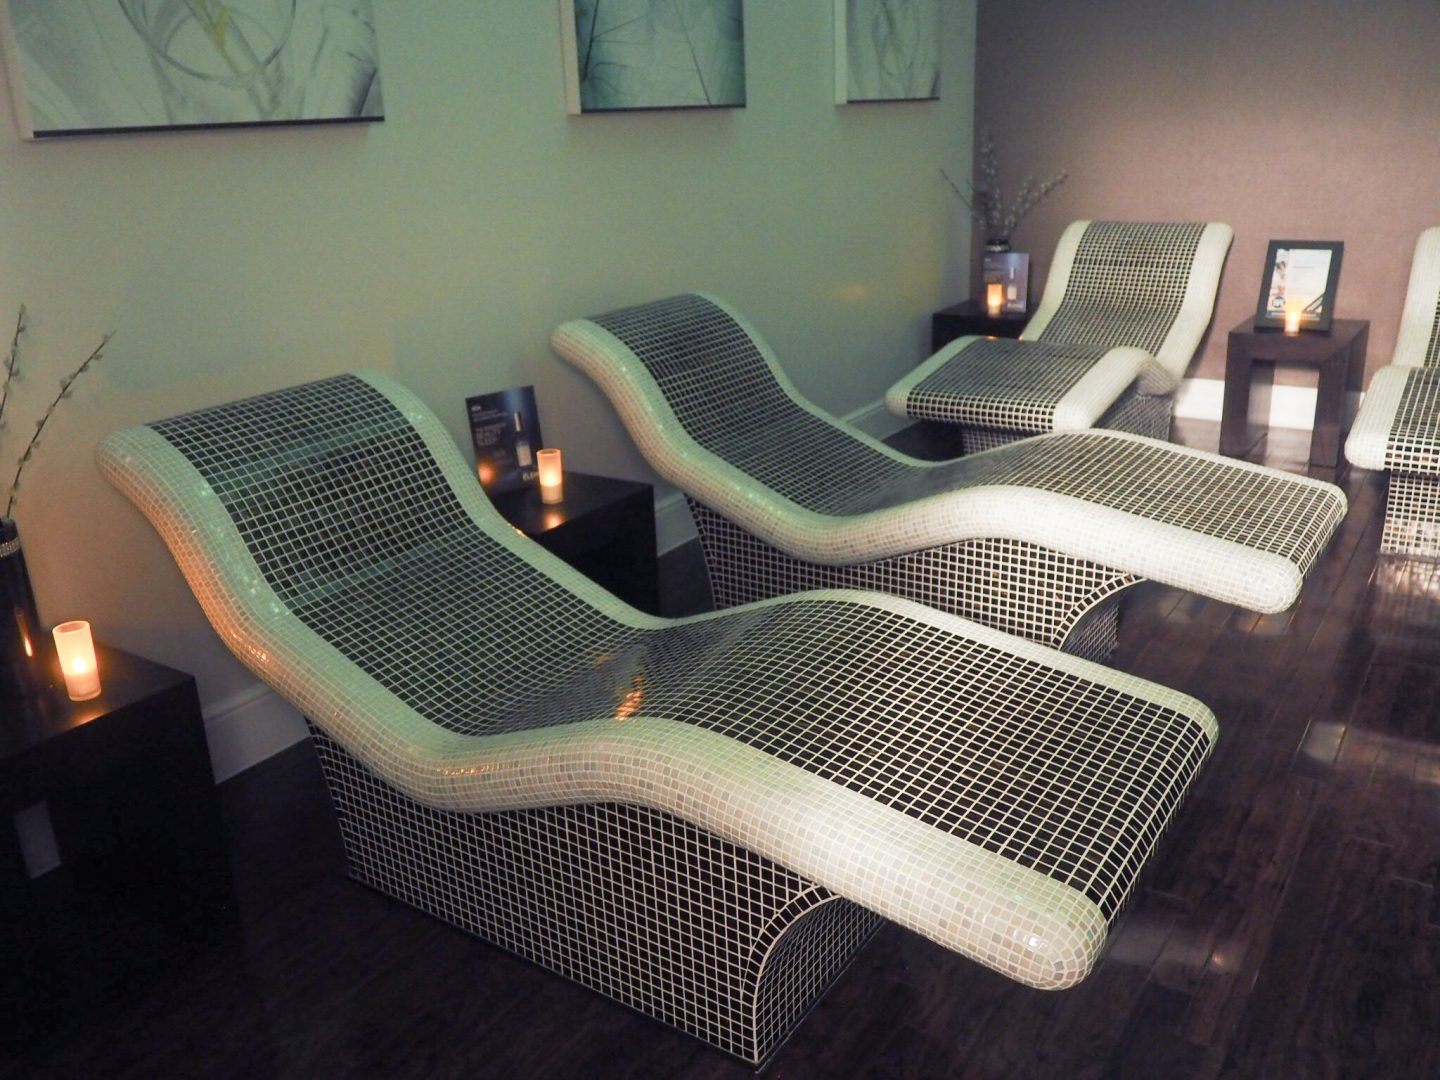 Kingsford Spa heated beds